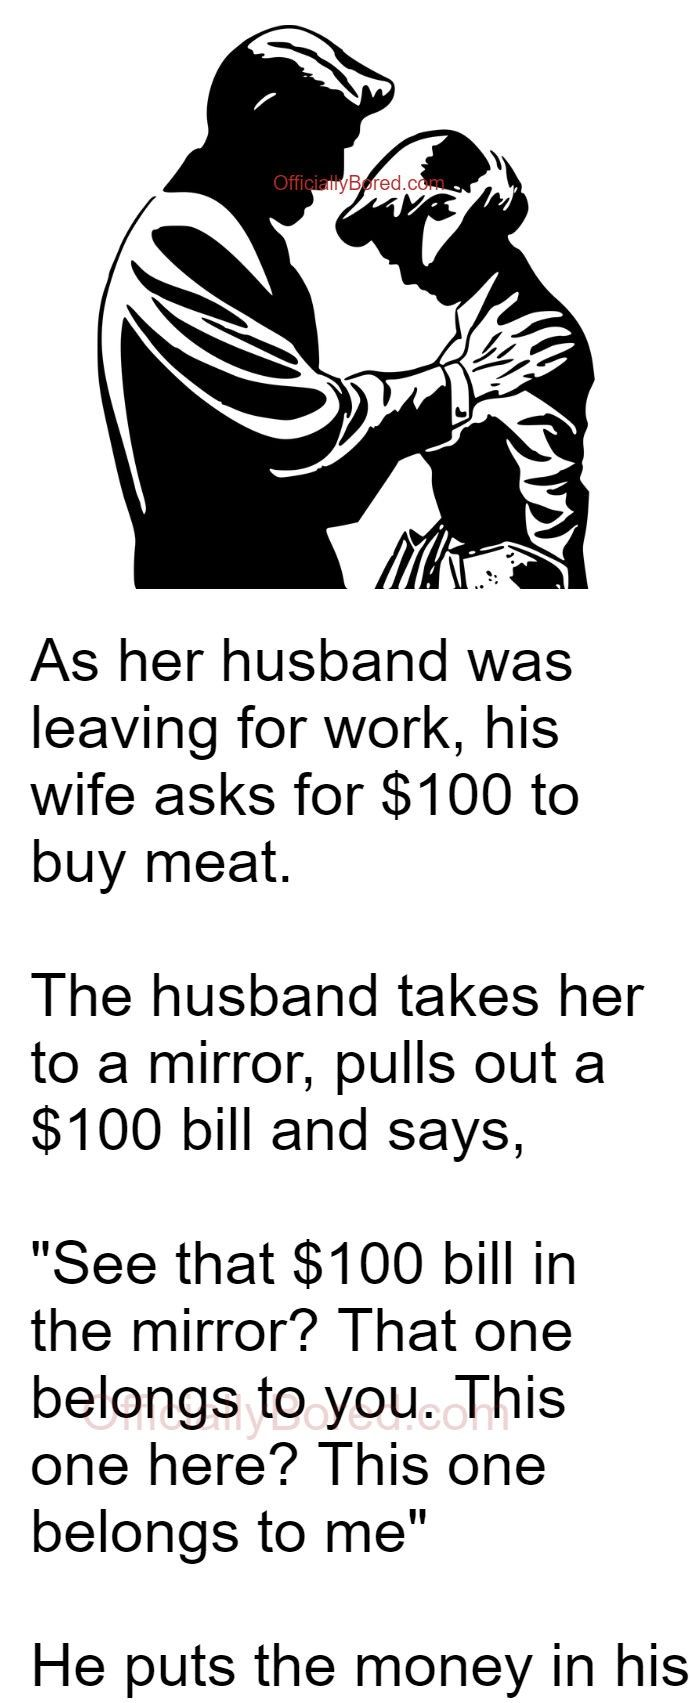 When Wife asked husband for $100 to buy Meat | OfficiallyBored